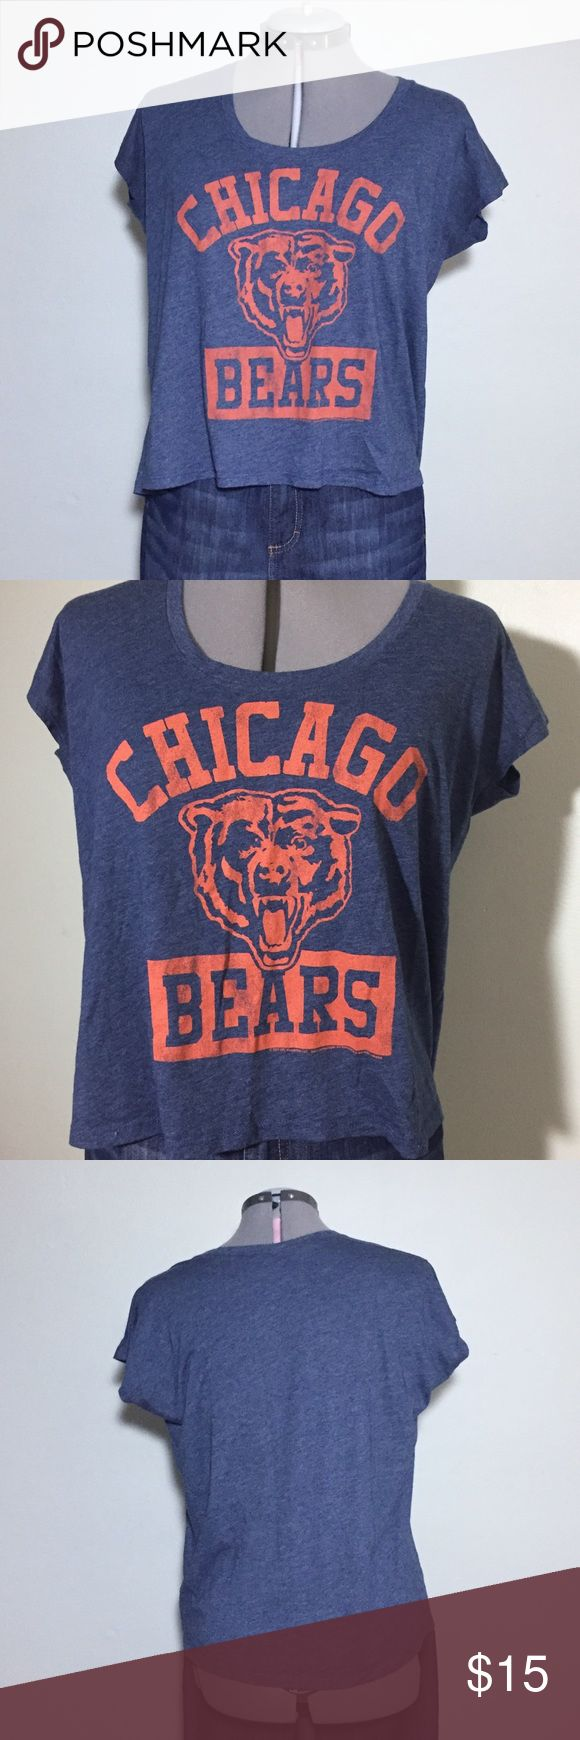 "Chicago Bears NFL Team Apparel Boxy Fit Crop Tee Chicago Bears NFL Team Apparel Boxy Fit Crop T-Shirt Tee. Size S measures flat: 22"" across, 22"" long. 50% cotton, 50% polyester. 704/100/070517 NFL Team Apparel Tops Tees - Short Sleeve"